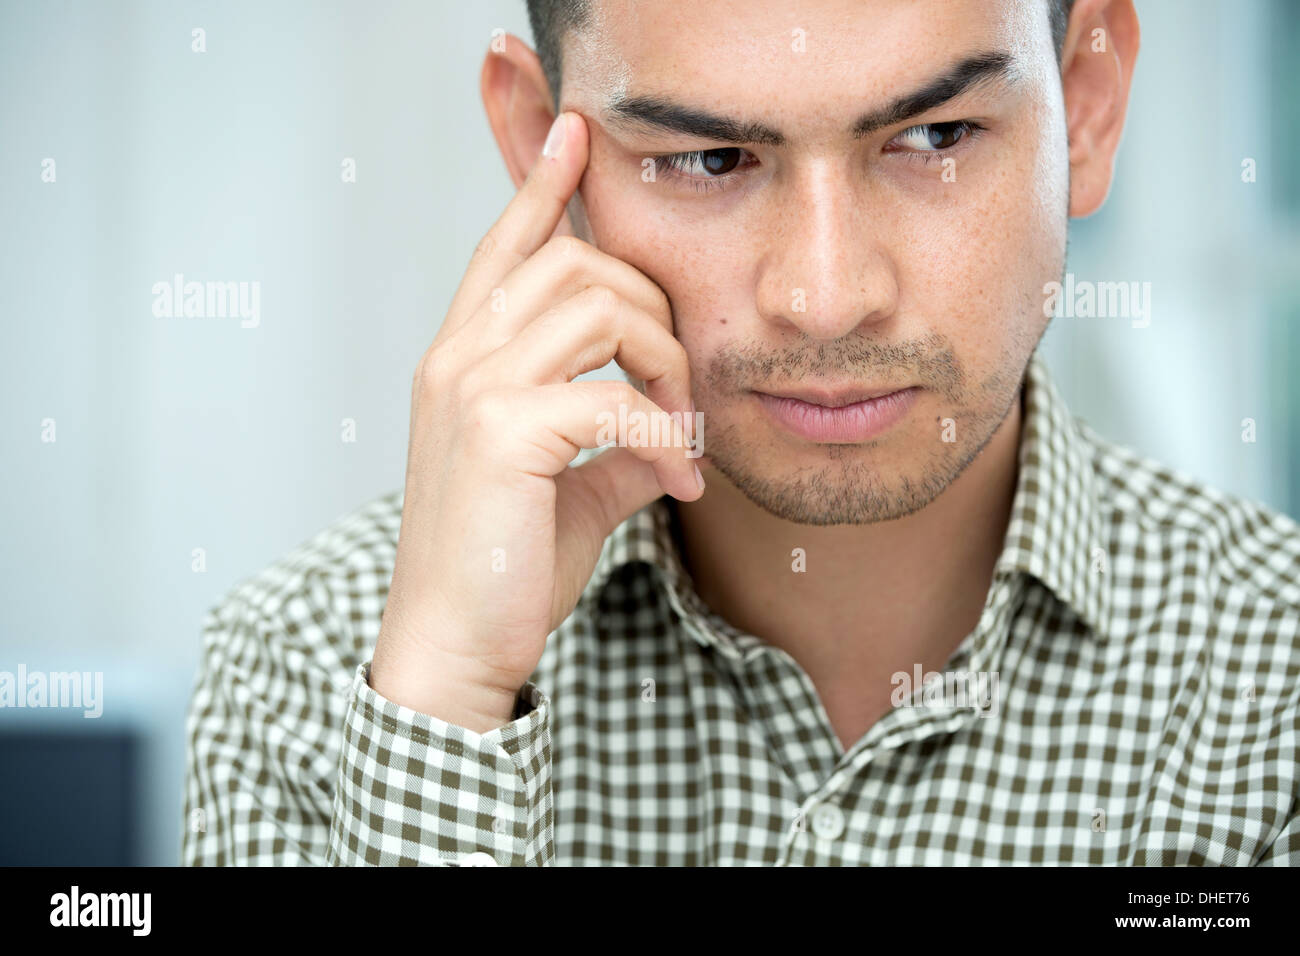 Mid adult man deep in thought - Stock Image